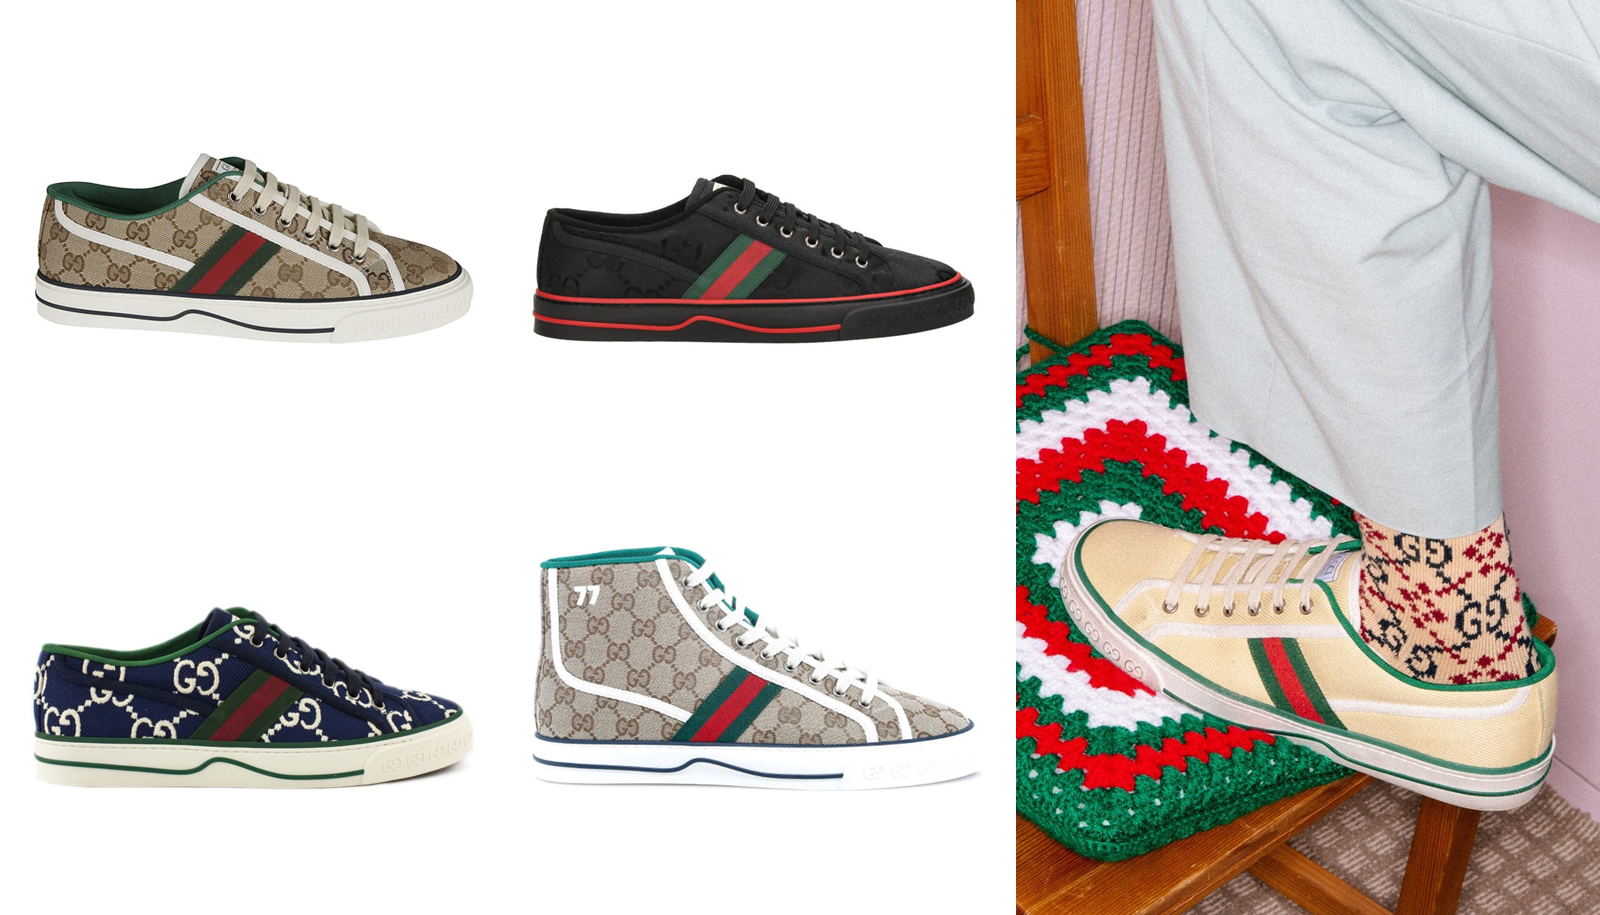 The Best Gucci Sneakers for Men For Any